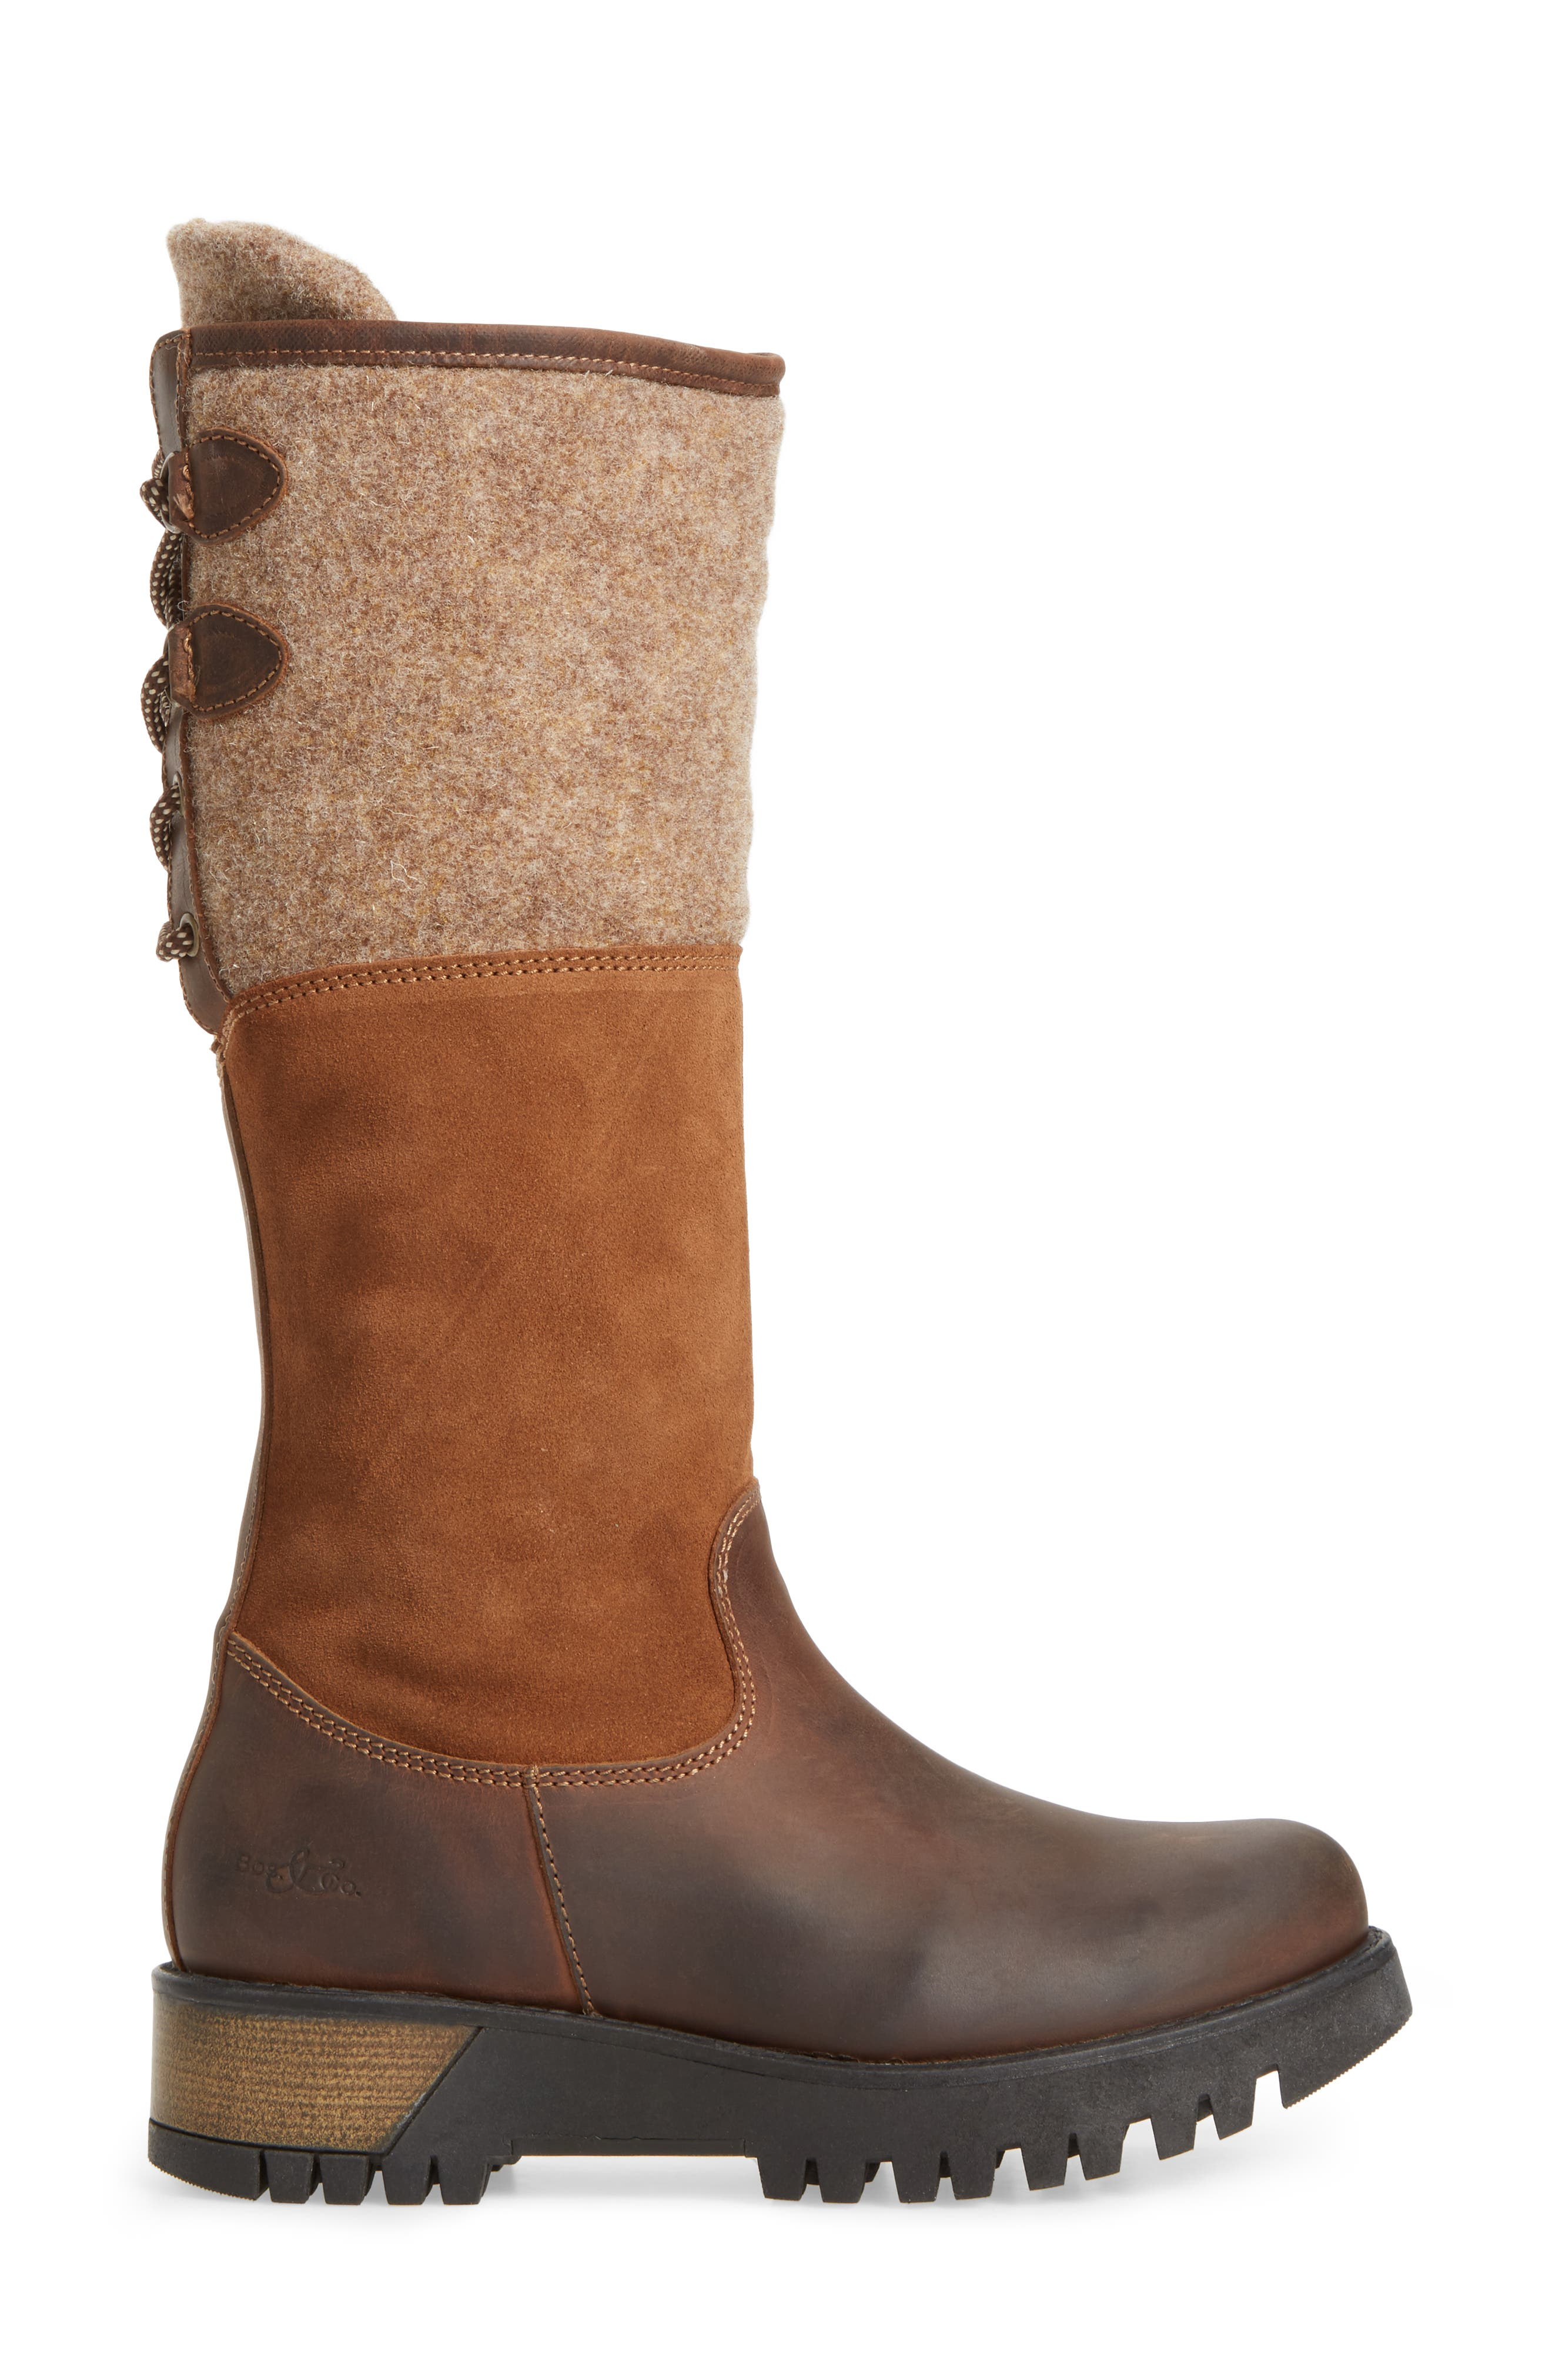 Alternate Image 3  - Bos. & Co. 'Ginger' Waterproof Mid Calf Platform Boot (Women)